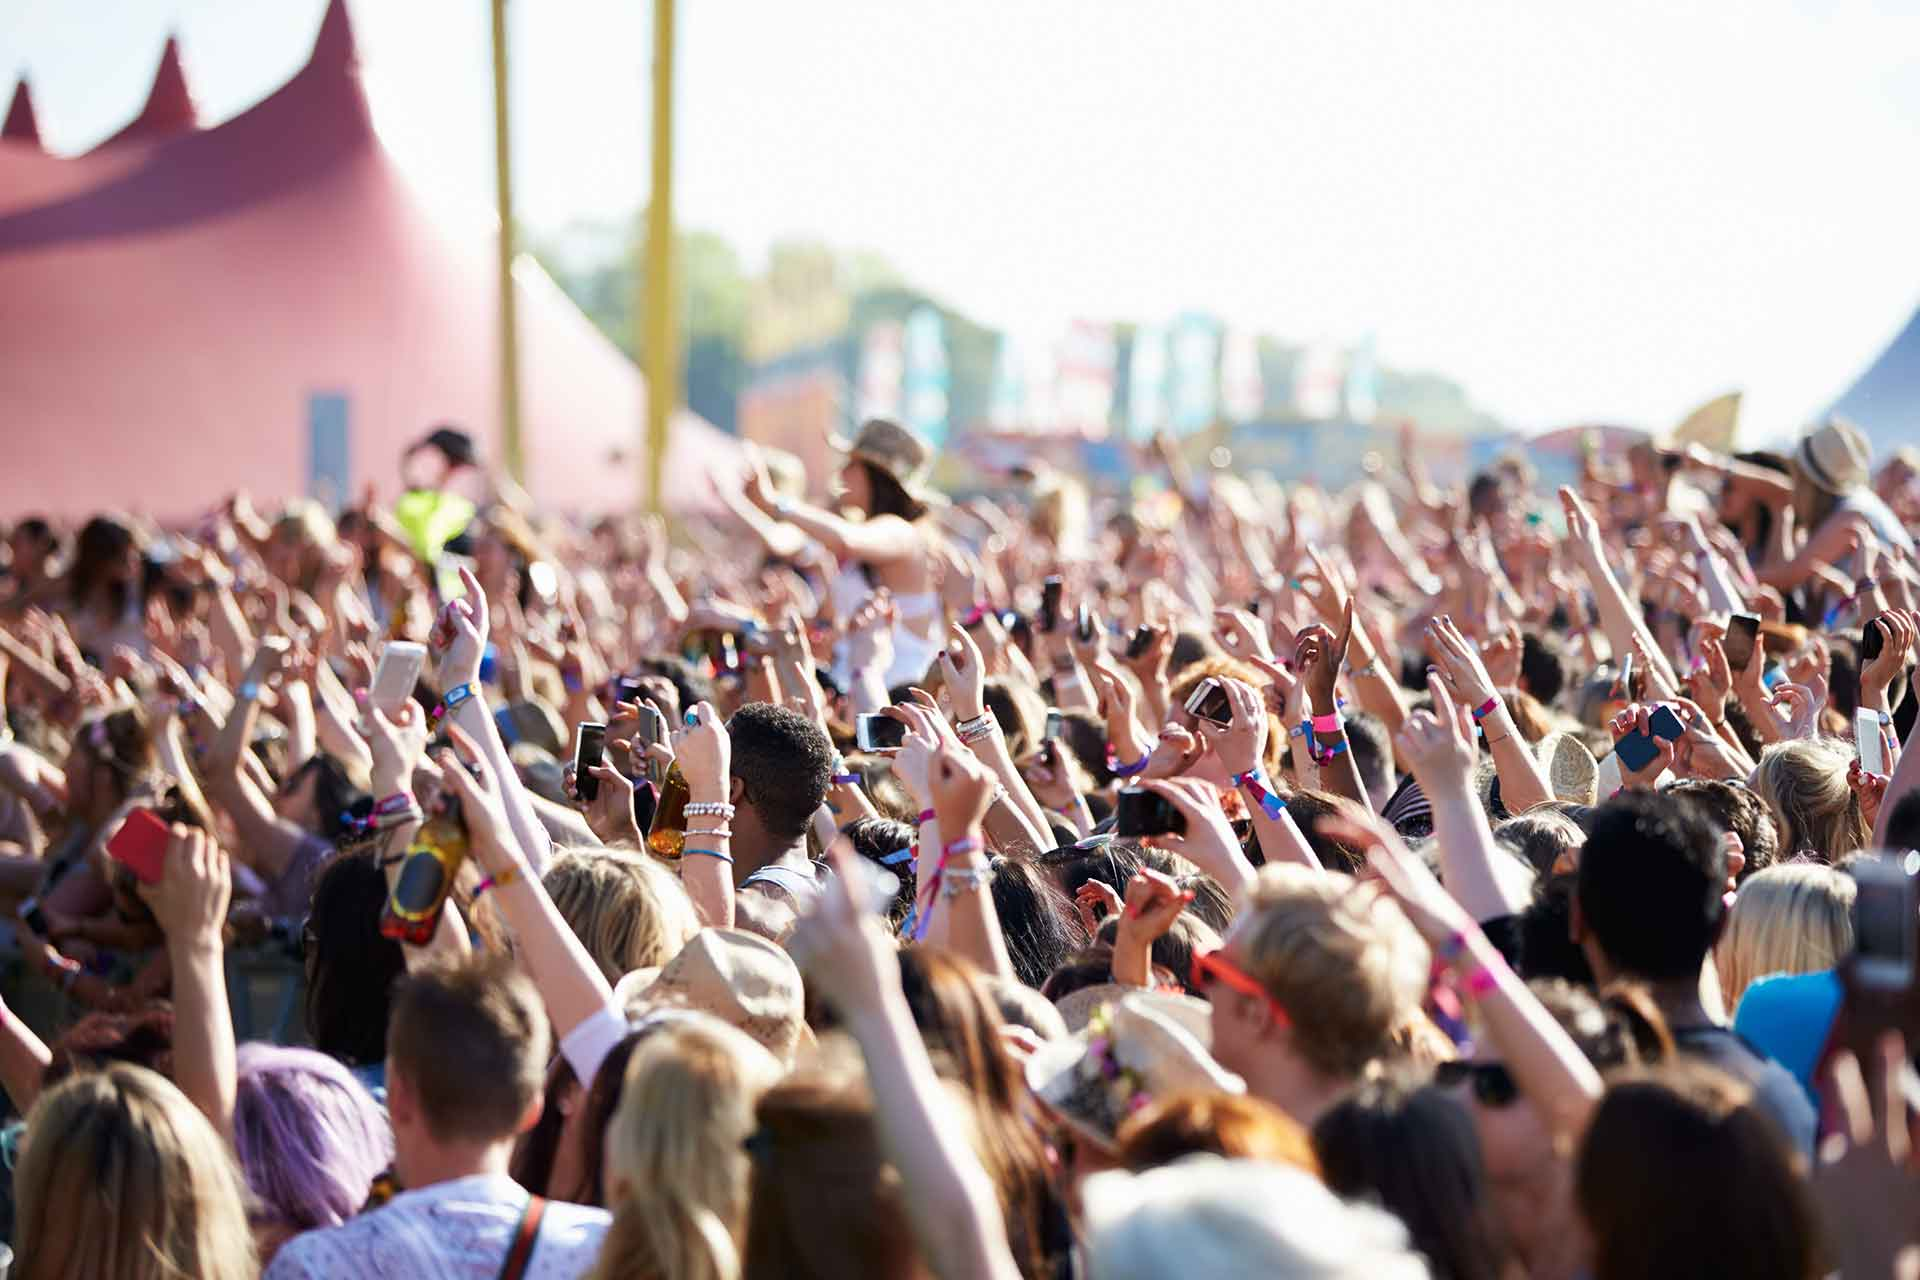 Crowd at a music festival